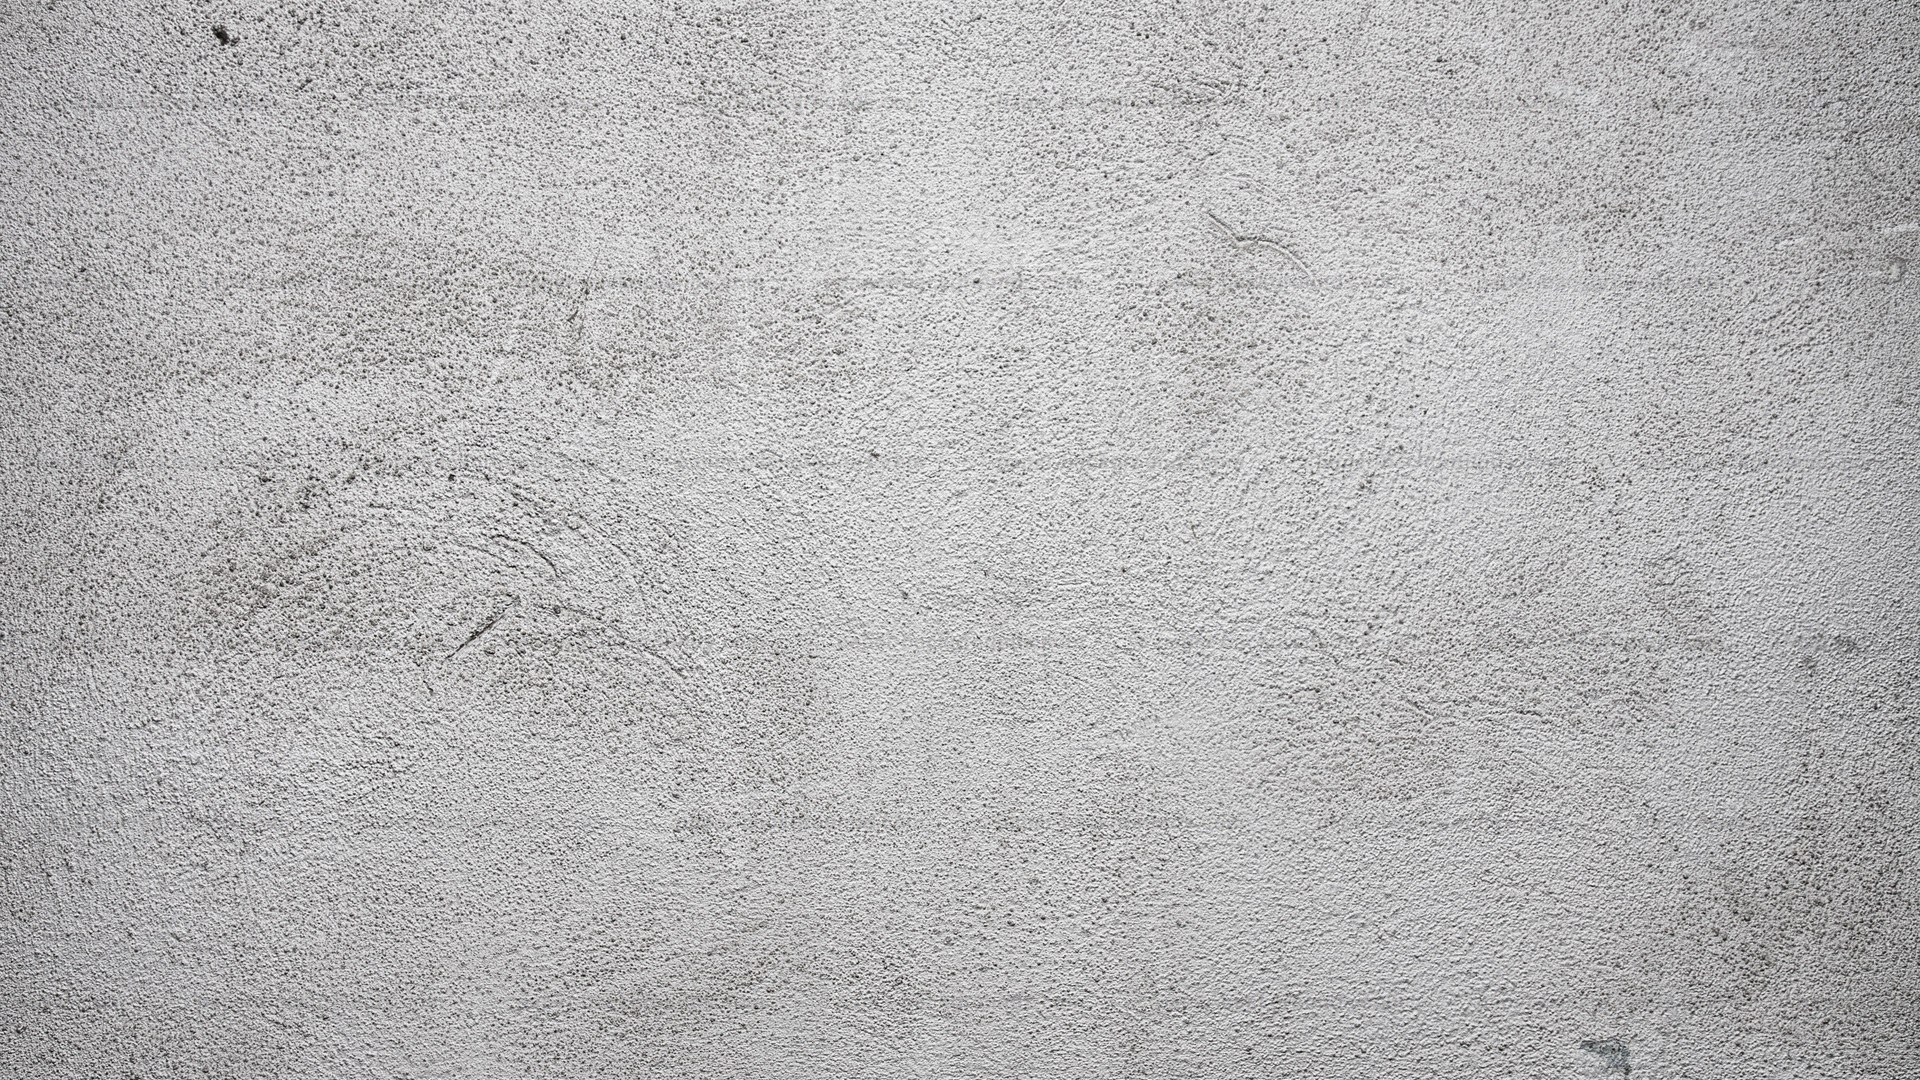 White Gray Concrete Wall Texture Hd Paper Backgrounds 1920x1080